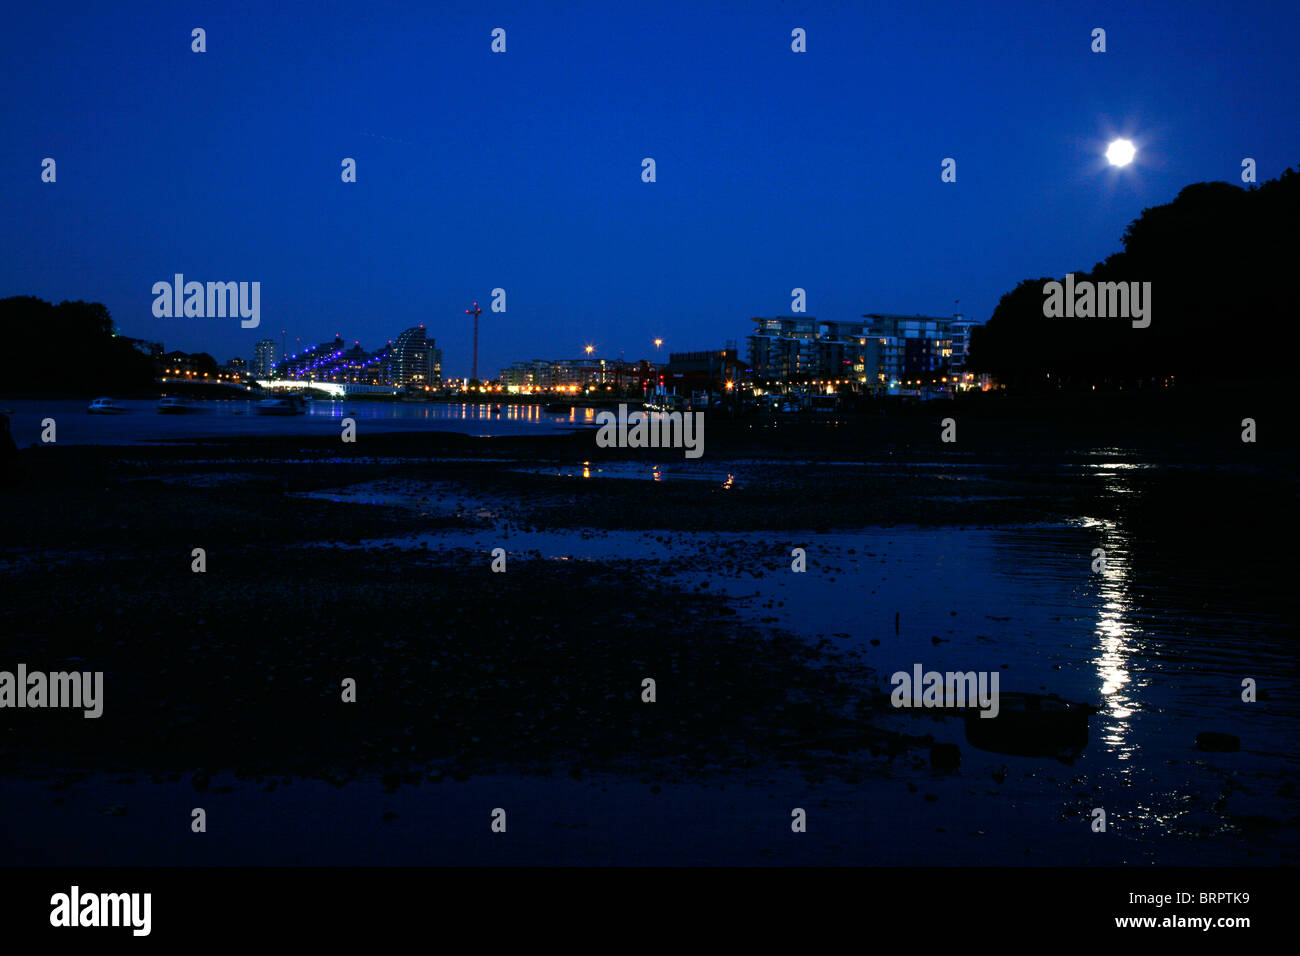 Full moon shining on the River Thames at low tide at Wandsworth, London, UK - Stock Image